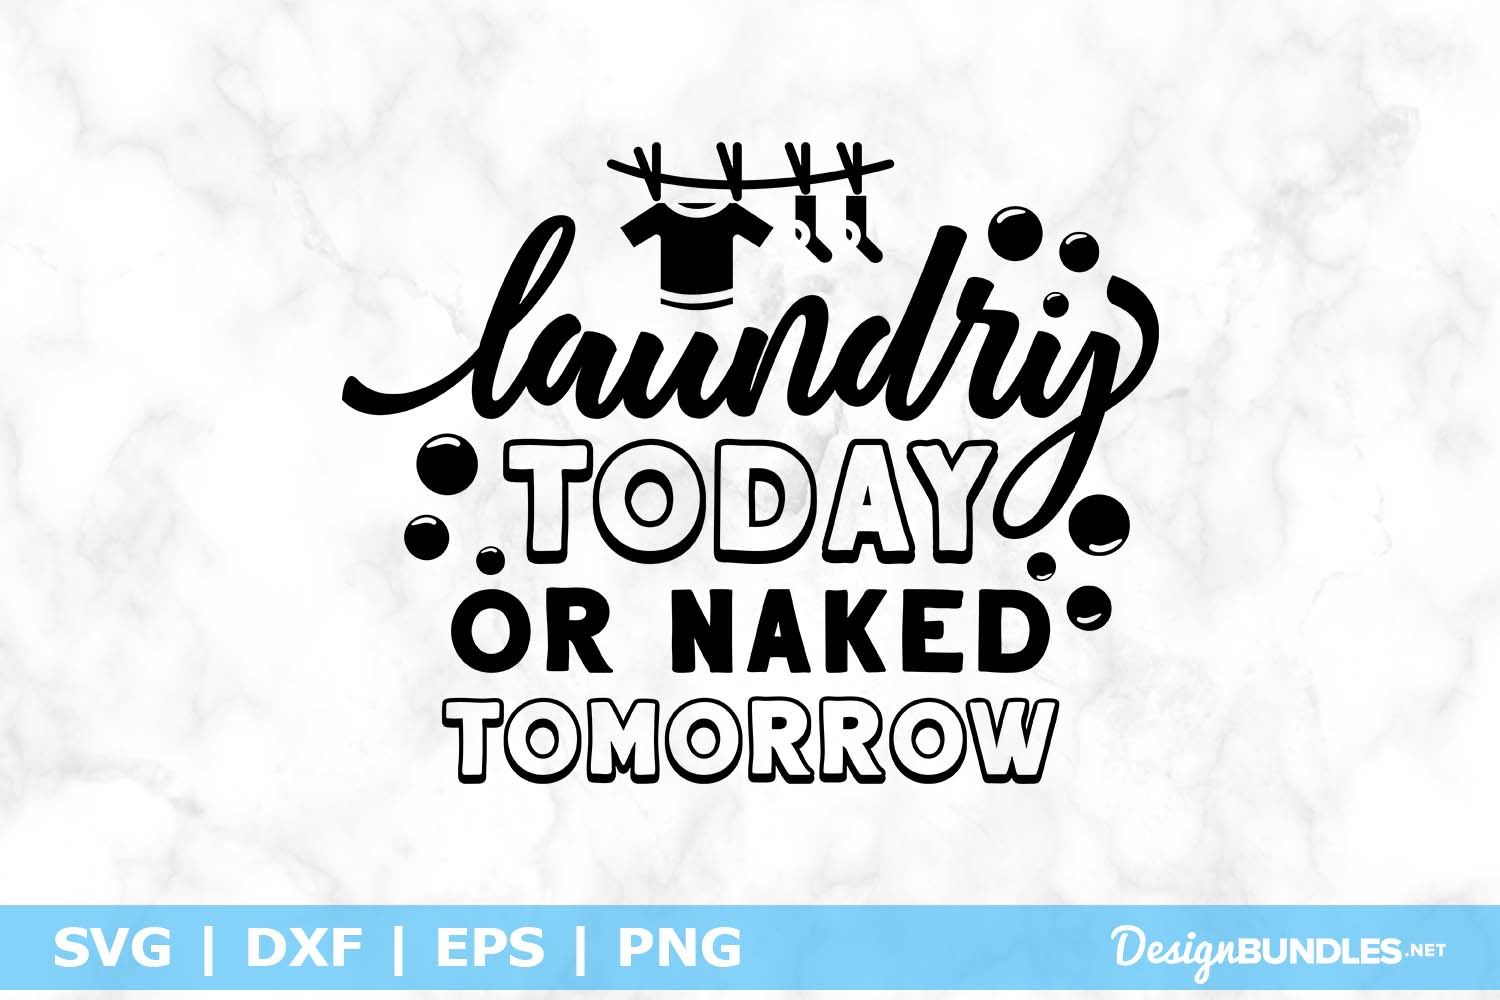 Laundry Today or Naked Tomorrow SVG File example image 1